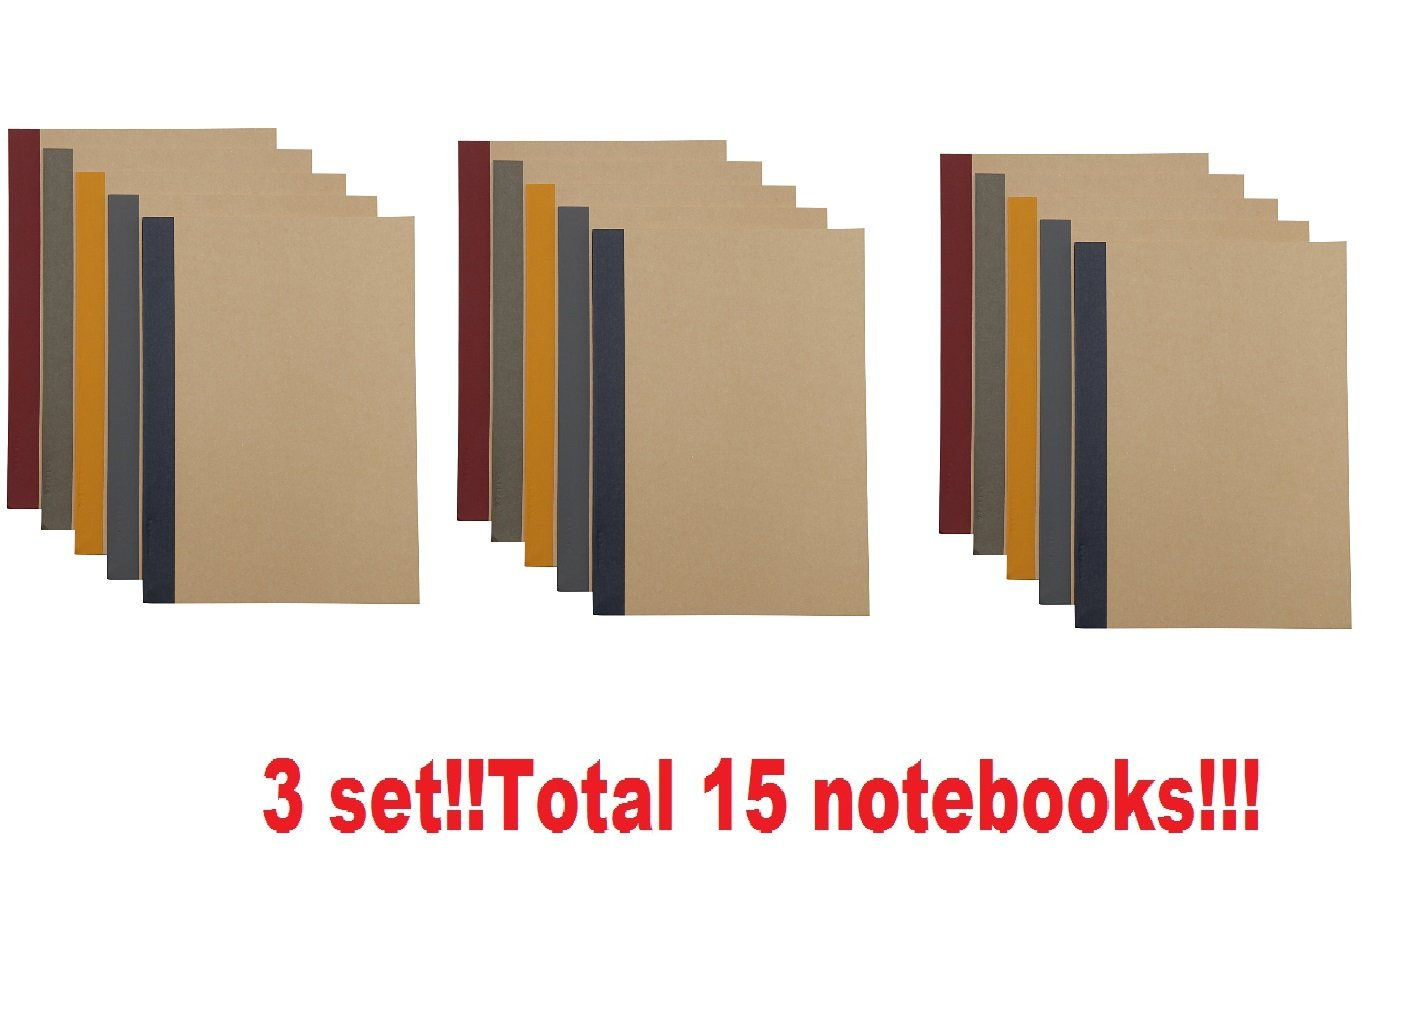 MUJI Planted tree Paper Note Book (Hard to bleedthrough) 15 set B5 · 90 sheets · 6mm ruled paper,5 colors from Japan 76316145 by Muji